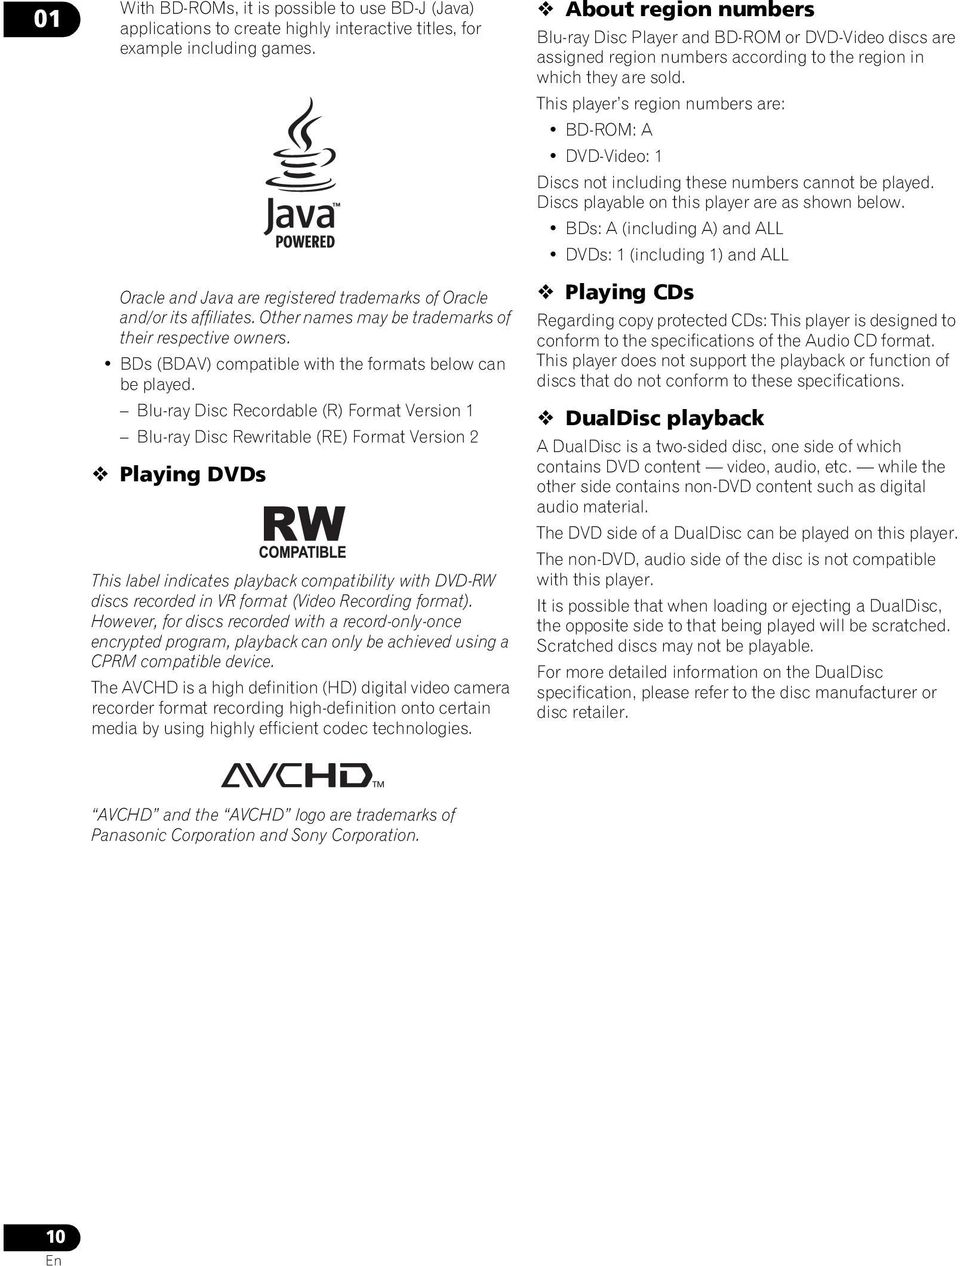 Blu-ray Disc Recordable (R) Format Version 1 Blu-ray Disc Rewritable (RE) Format Version 2 Playing DVDs This label indicates playback compatibility with DVD-RW discs recorded in VR format (Video